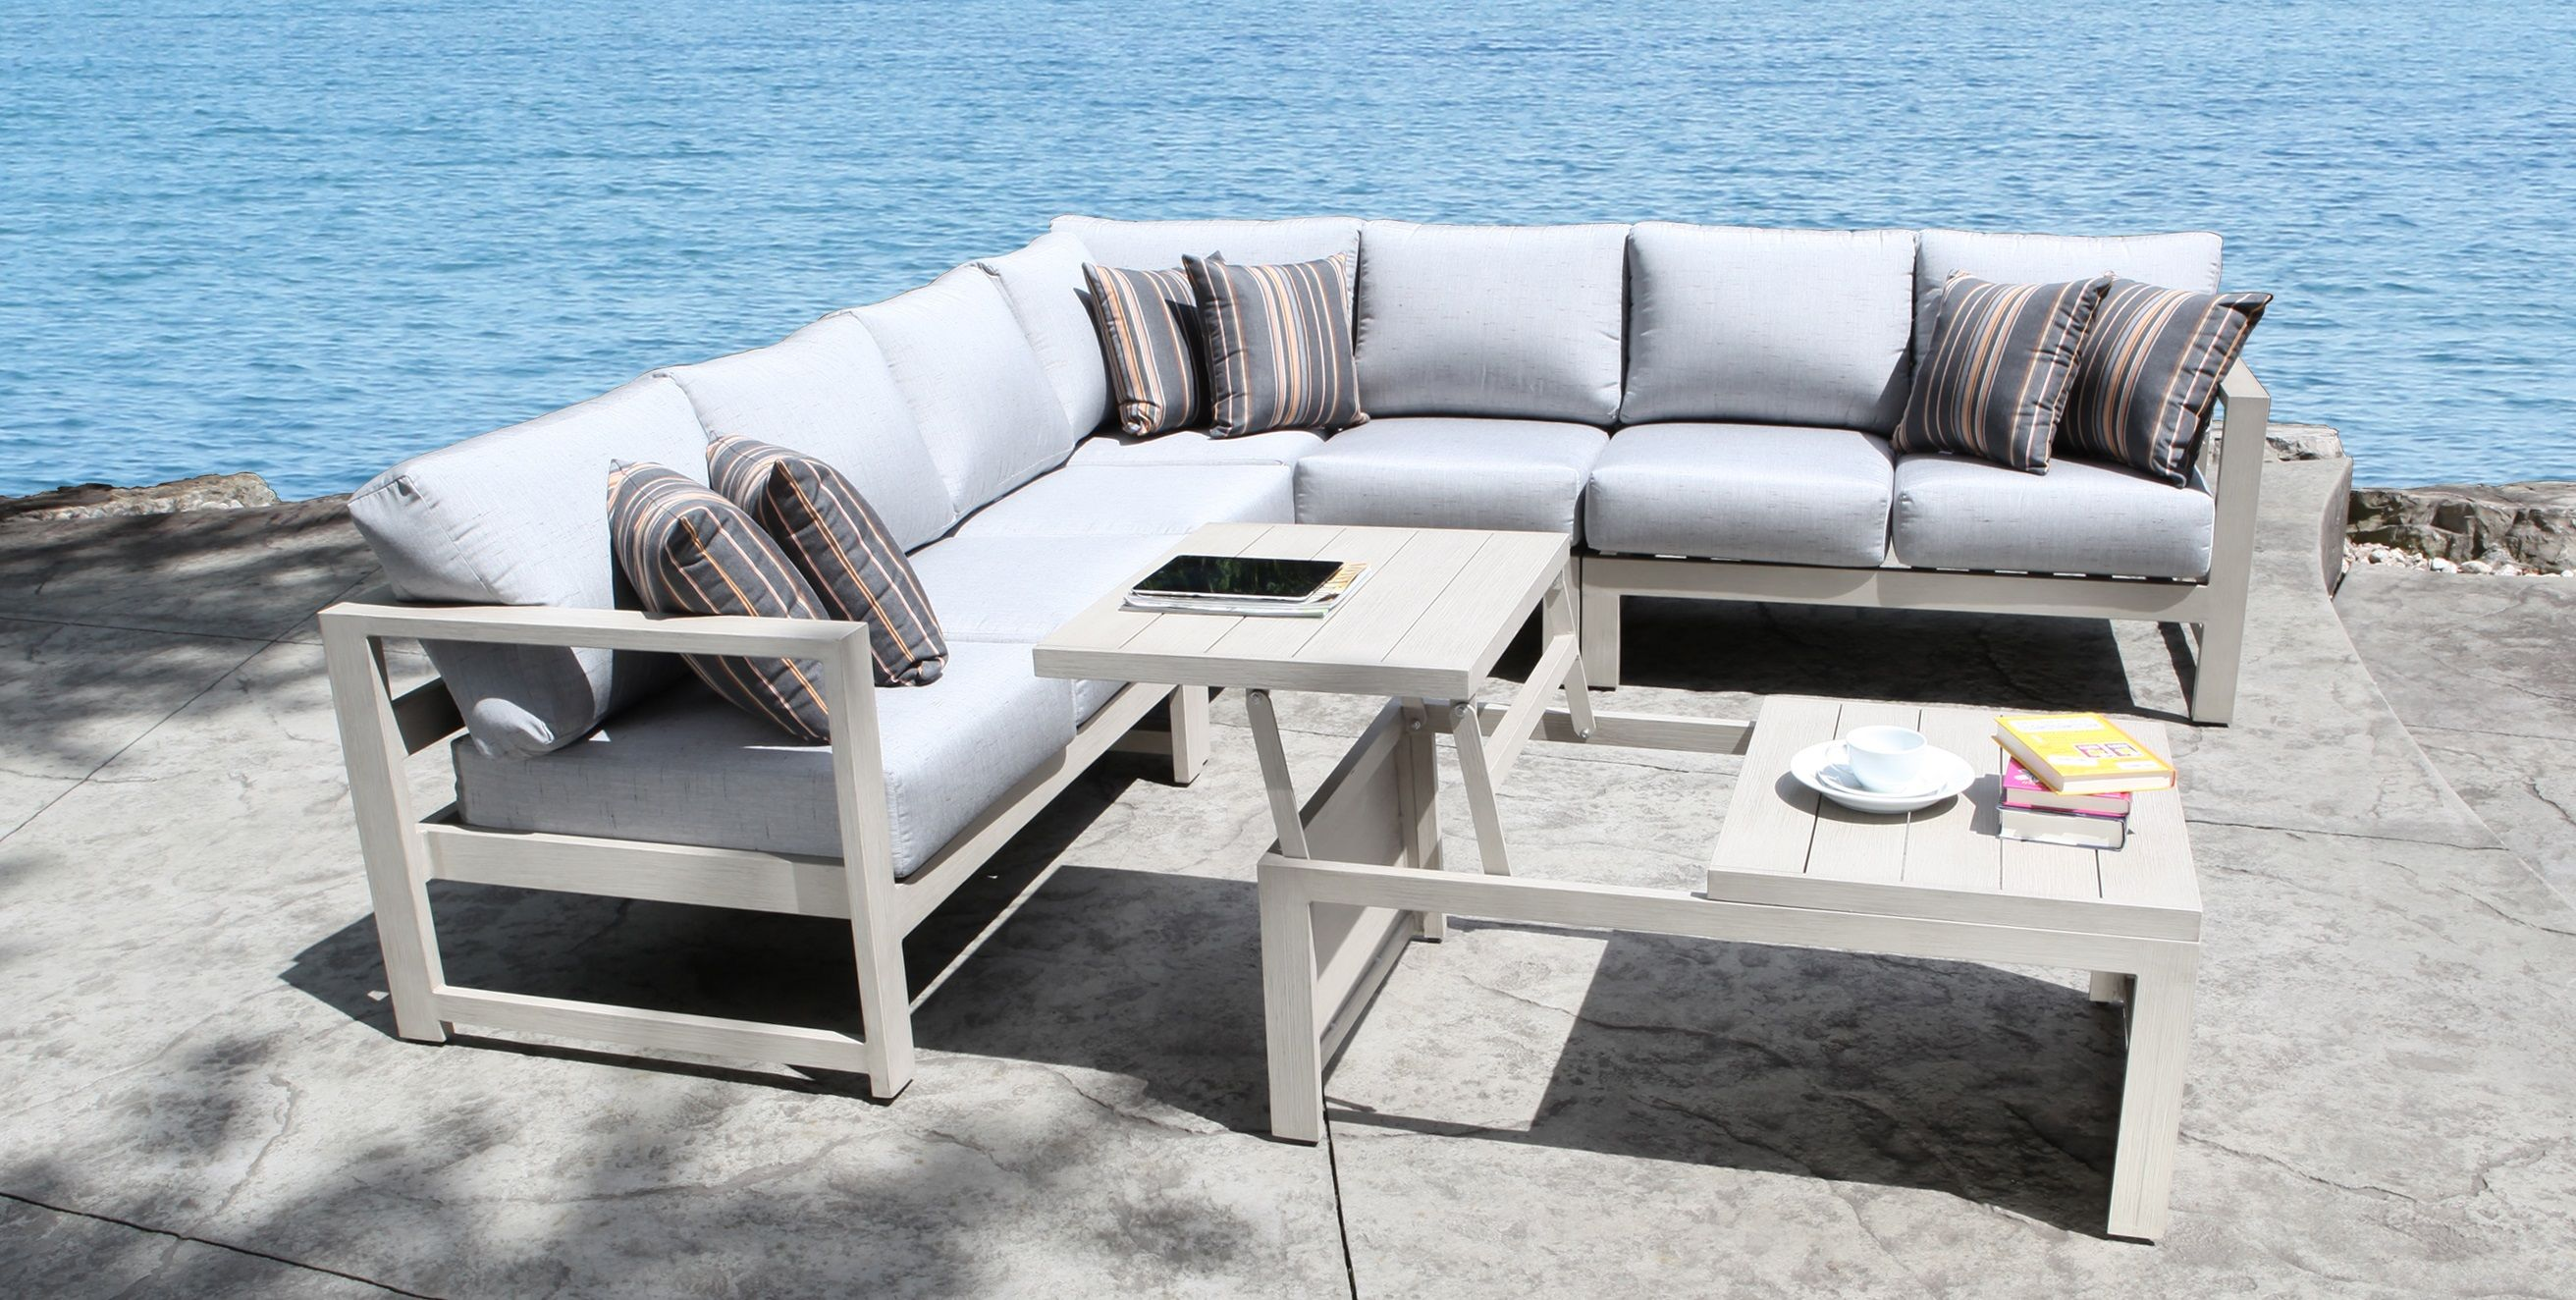 Charmant Why You Should Invest In Quality Outdoor Furniture From CabanaCoast